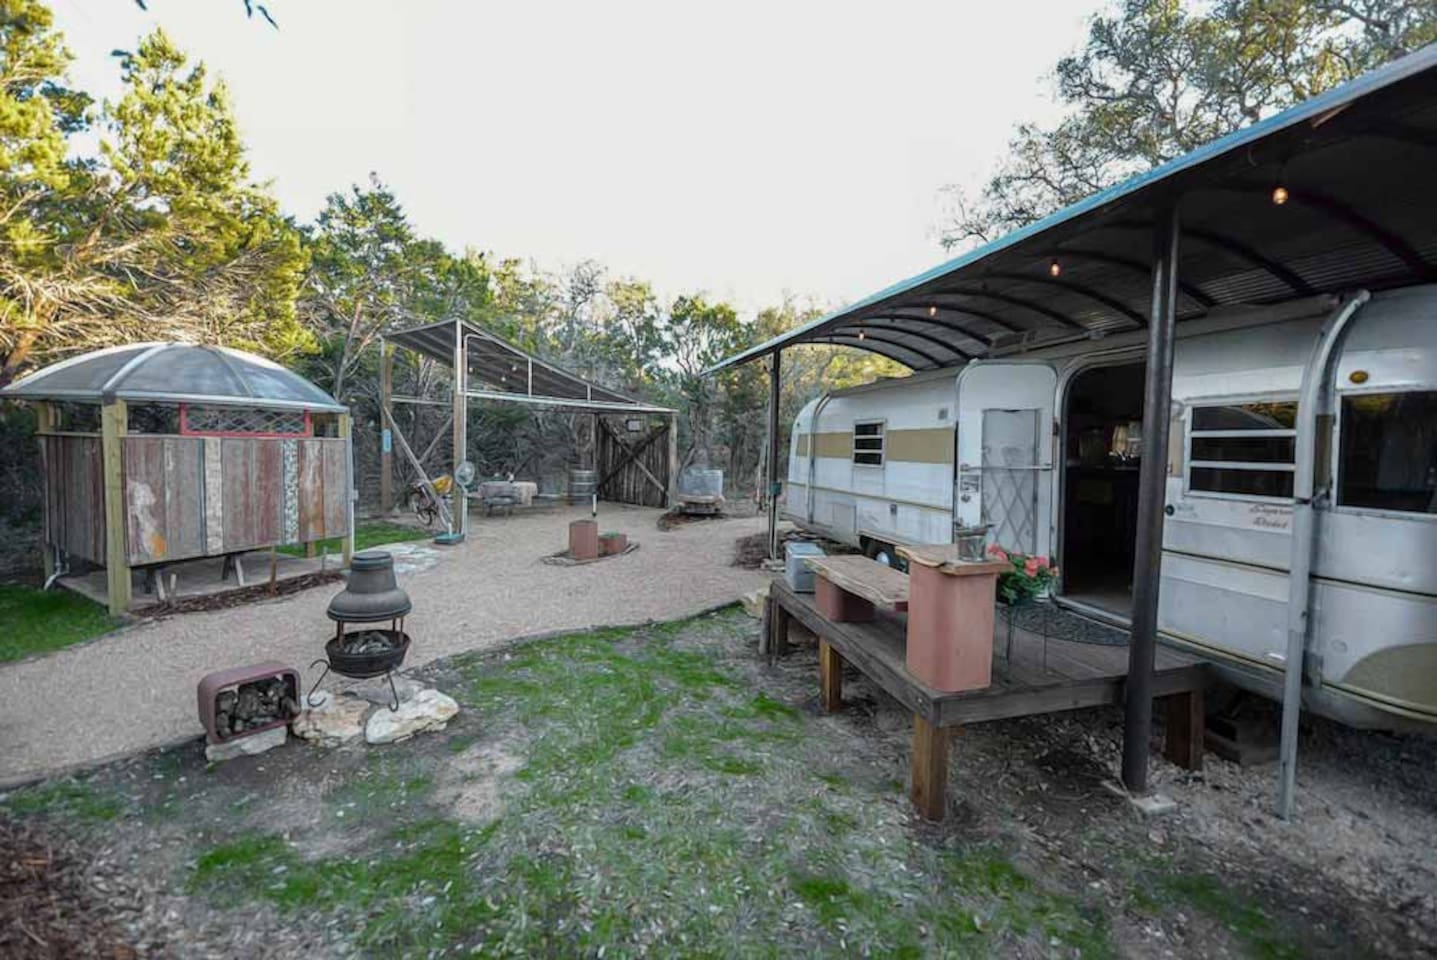 private area with an outdoor shower and covered picnic area, chiminea, and BBQ grill